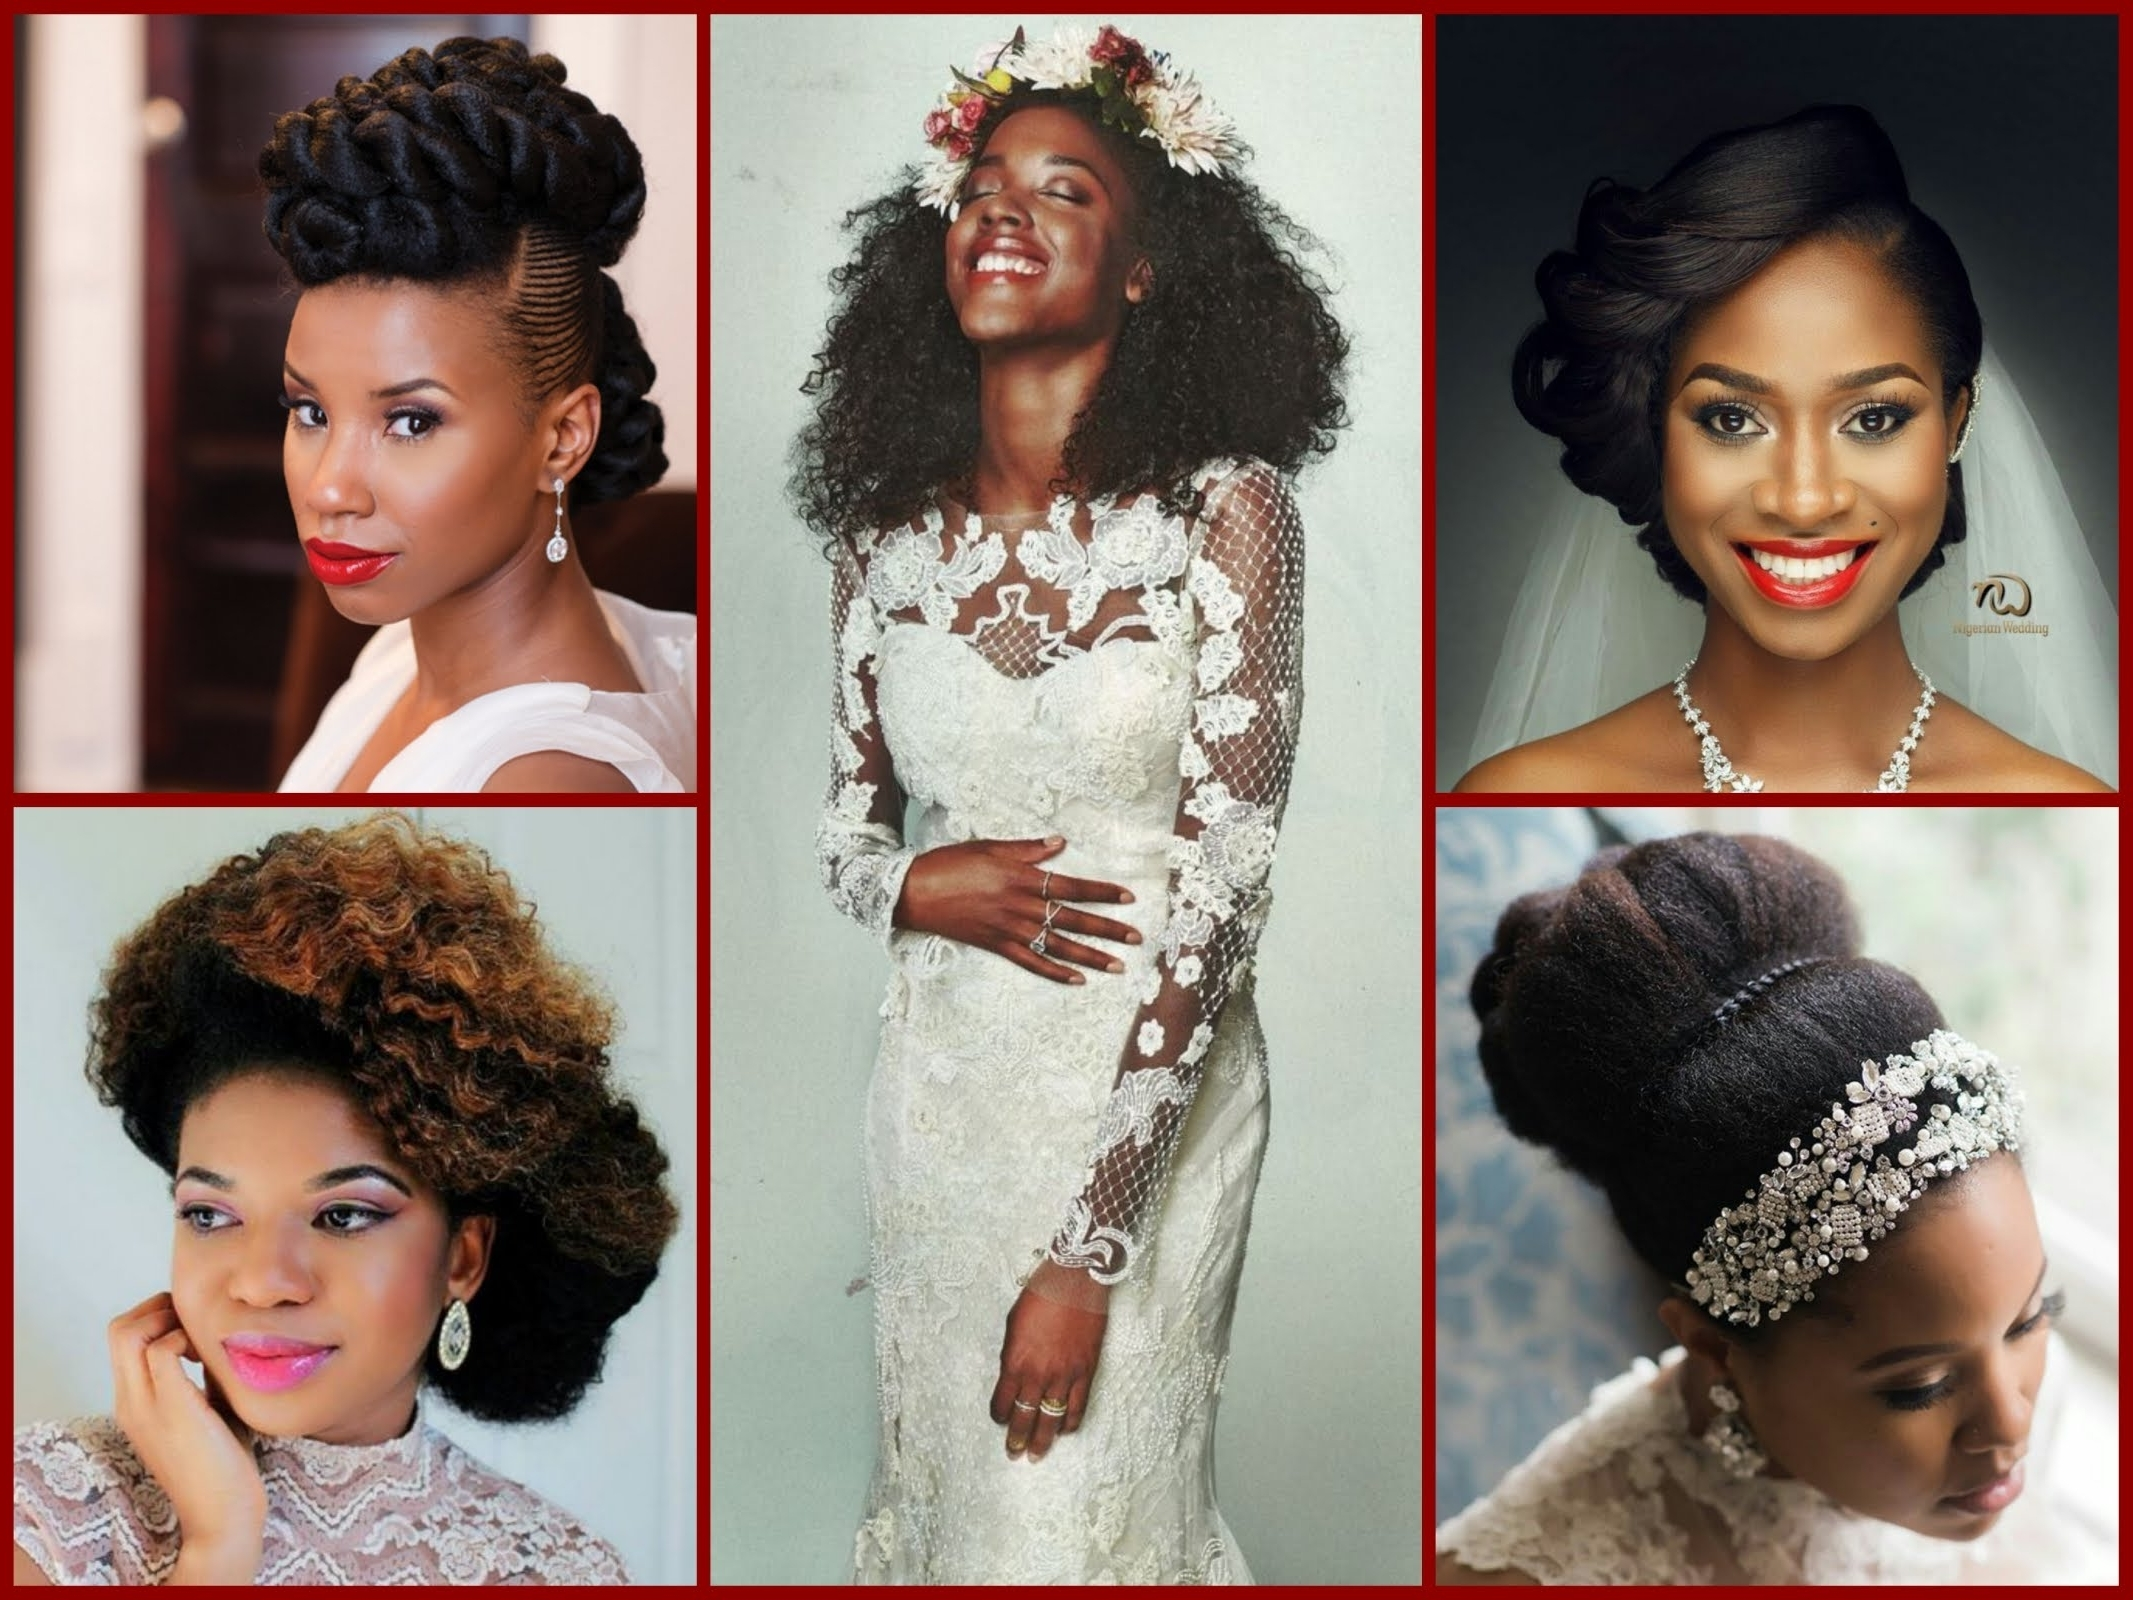 Famous Wedding Hairstyles For Black Girl Pertaining To Black Women Wedding Hairstyles – 40 Beautiful Updos – Youtube (Gallery 1 of 15)